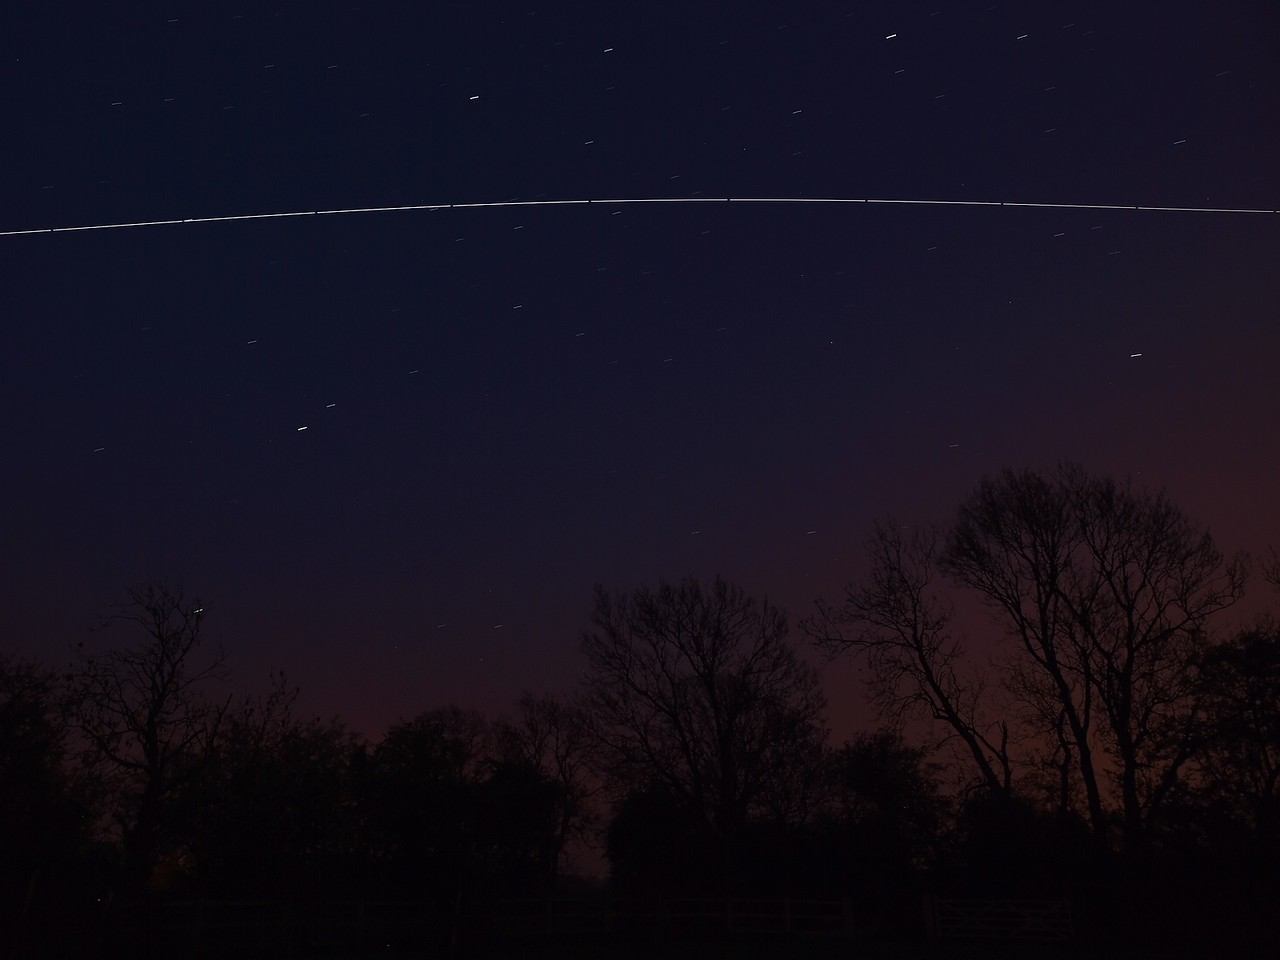 April 21 2011. International Space Station (ISS) passes over UK skies at 2125-2130 hrs. Set up 2 cameras looking south west and south east to maximise field of view, without distortion of a wide angle lens. This is the South East capture Oly E3. Both cams at ISO 400, E5 approx 12 No 6s exposures & E3 approx 12 No 10s exposures. Stacked in startrails software.